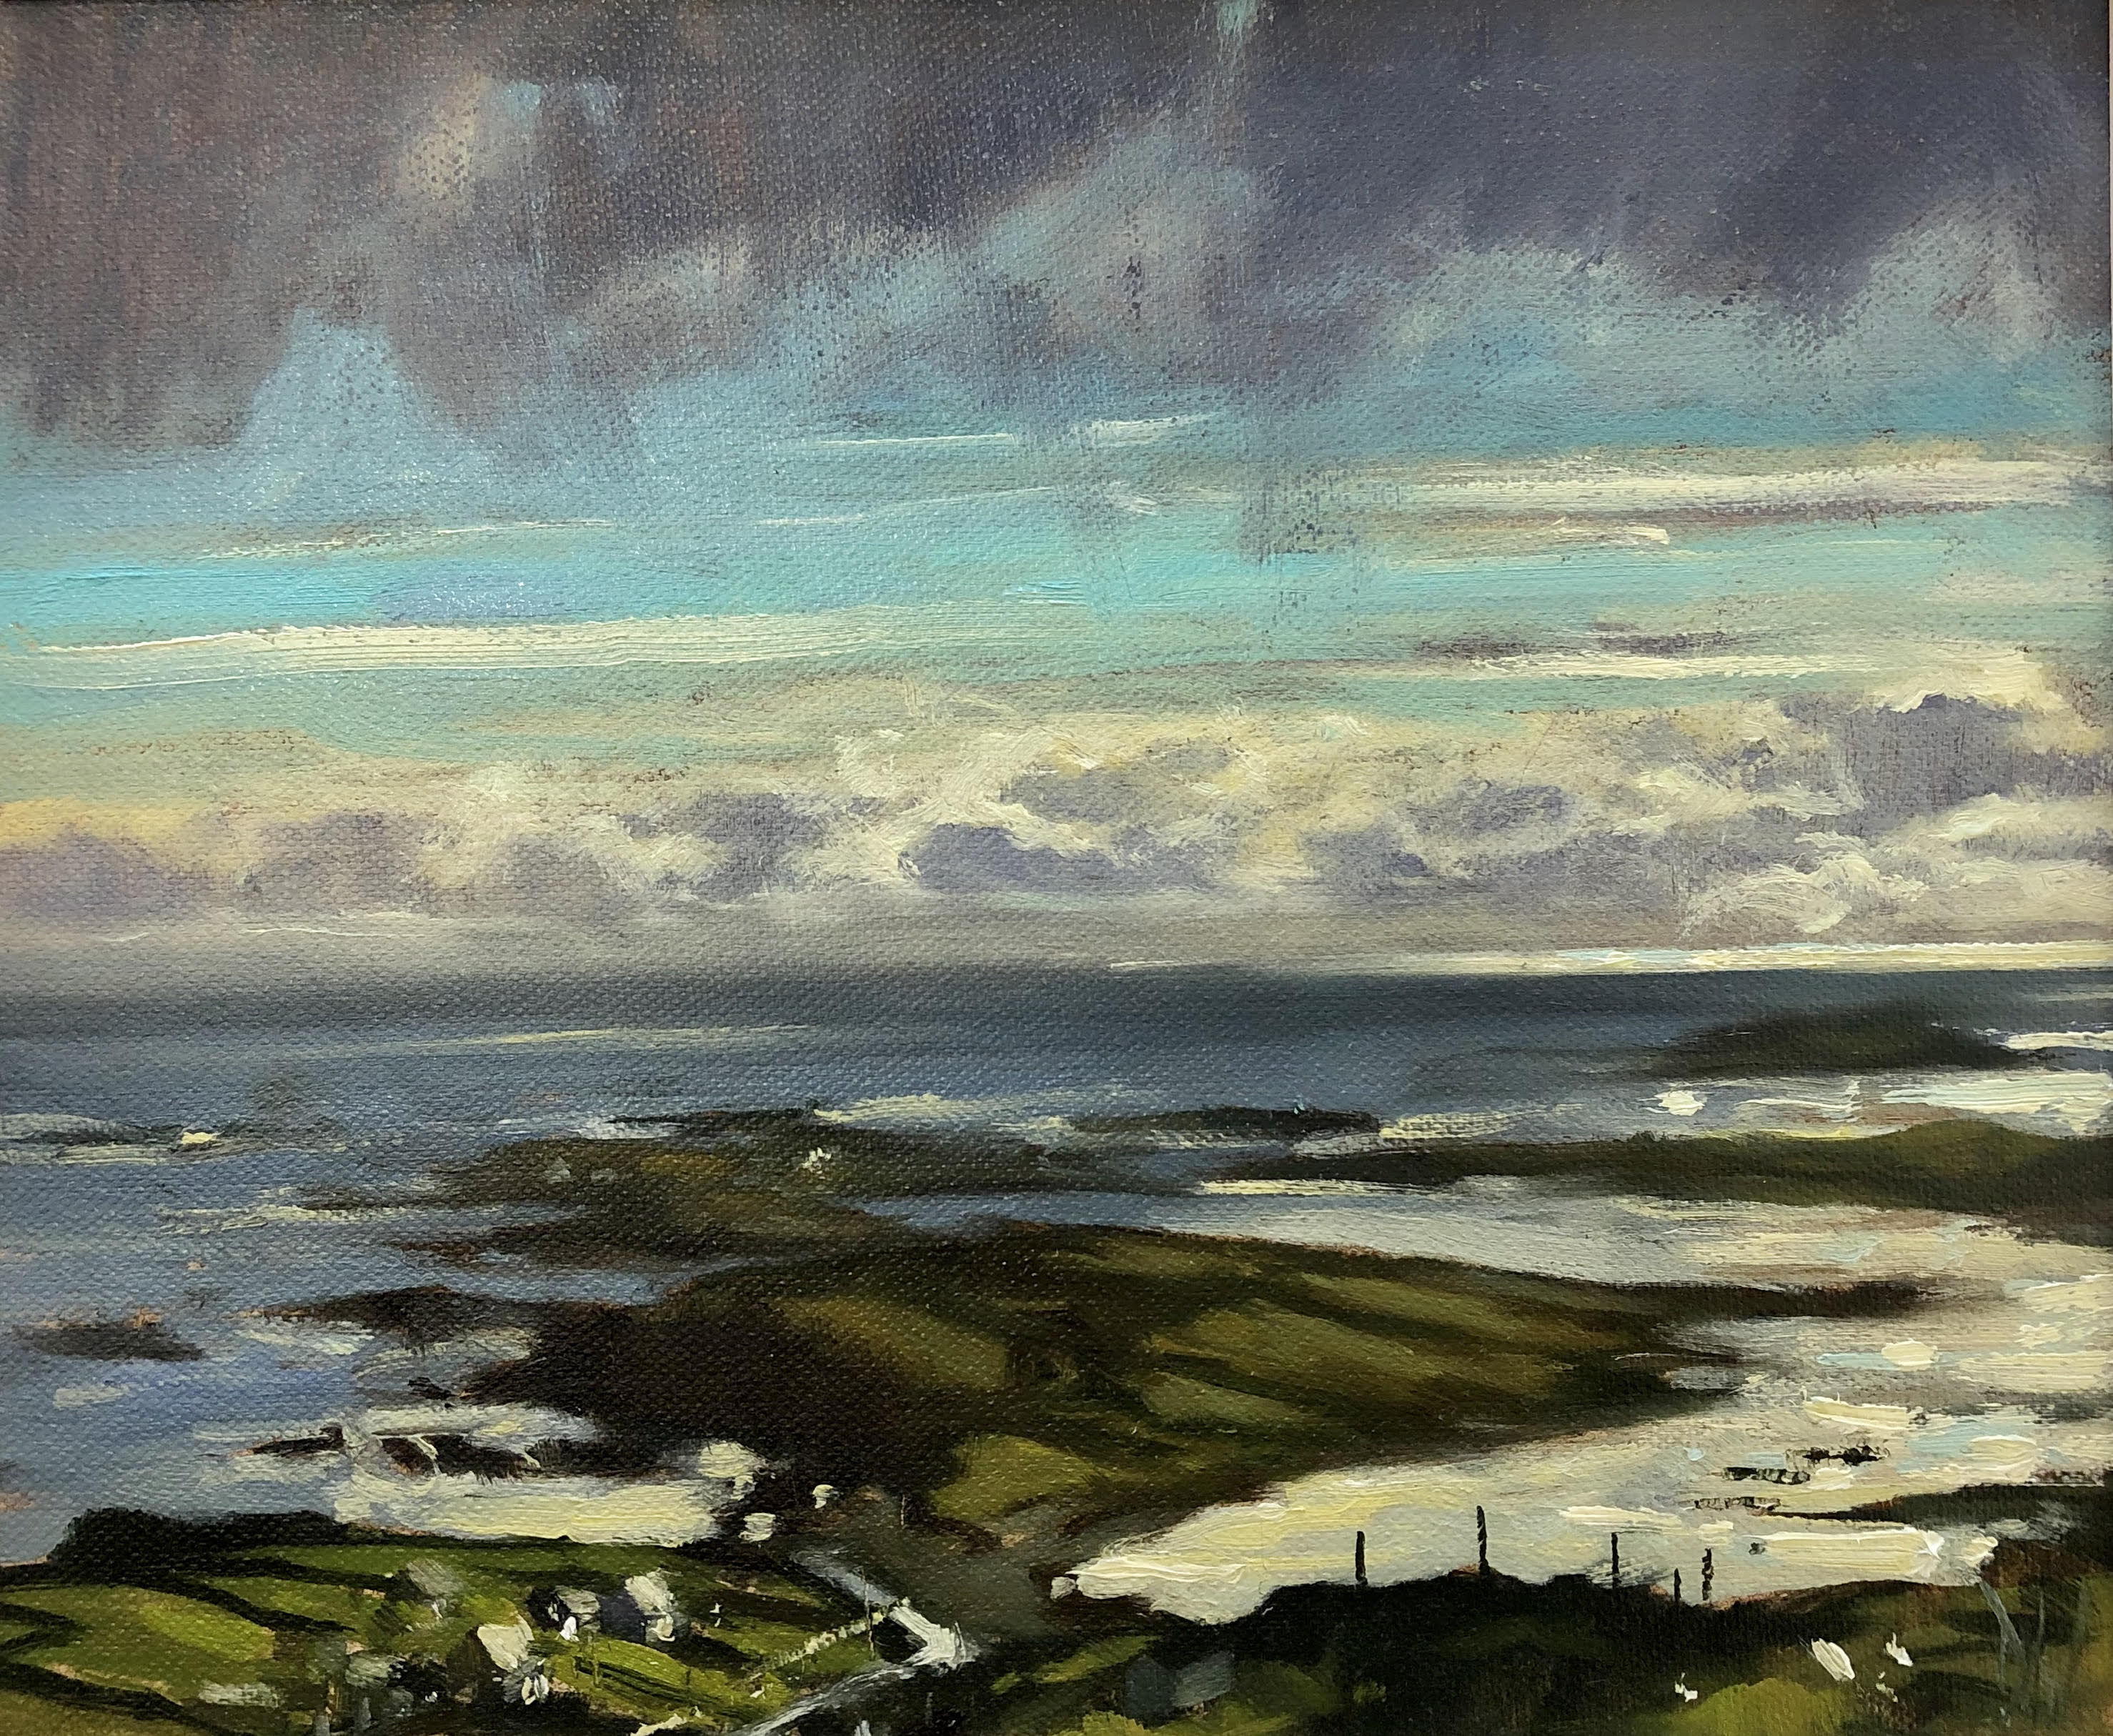 Ardmore from Sky Road by Dave West